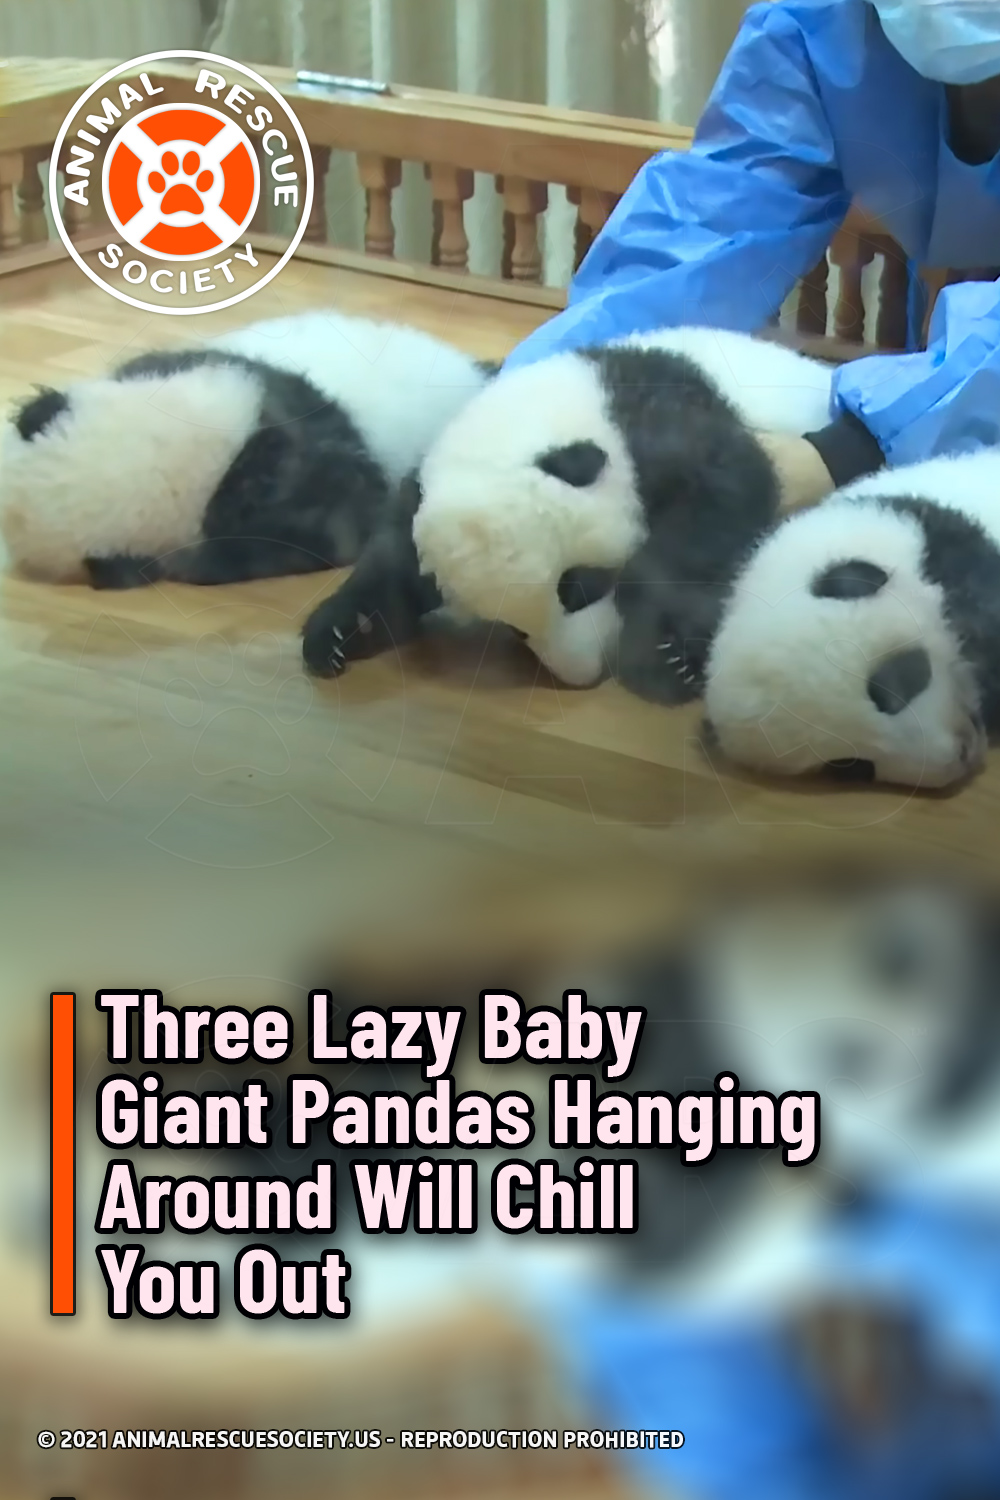 Three Lazy Baby Giant Pandas Hanging Around Will Chill You Out